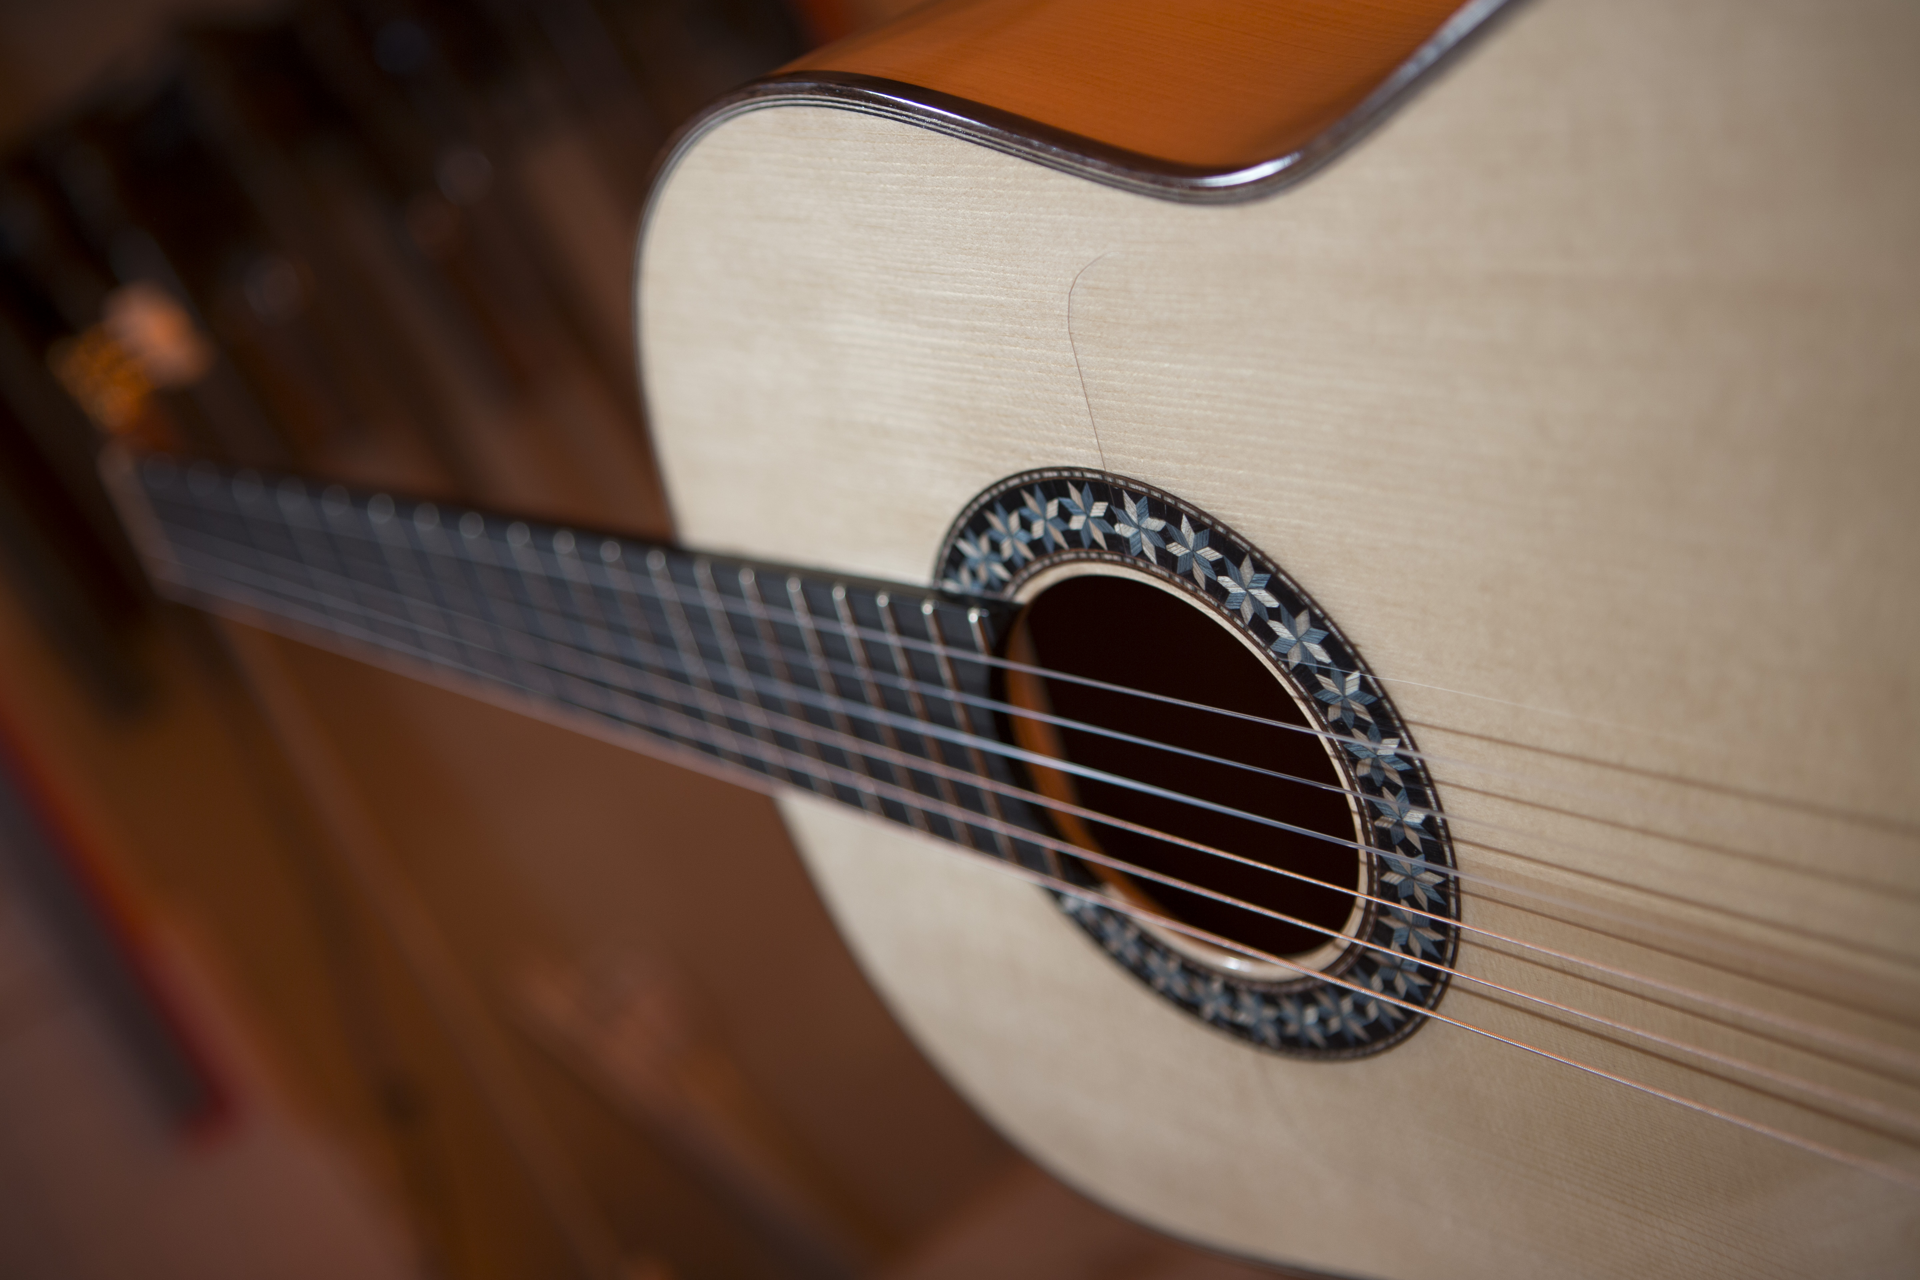 How does a Flamenco guitar sound to play classical music?